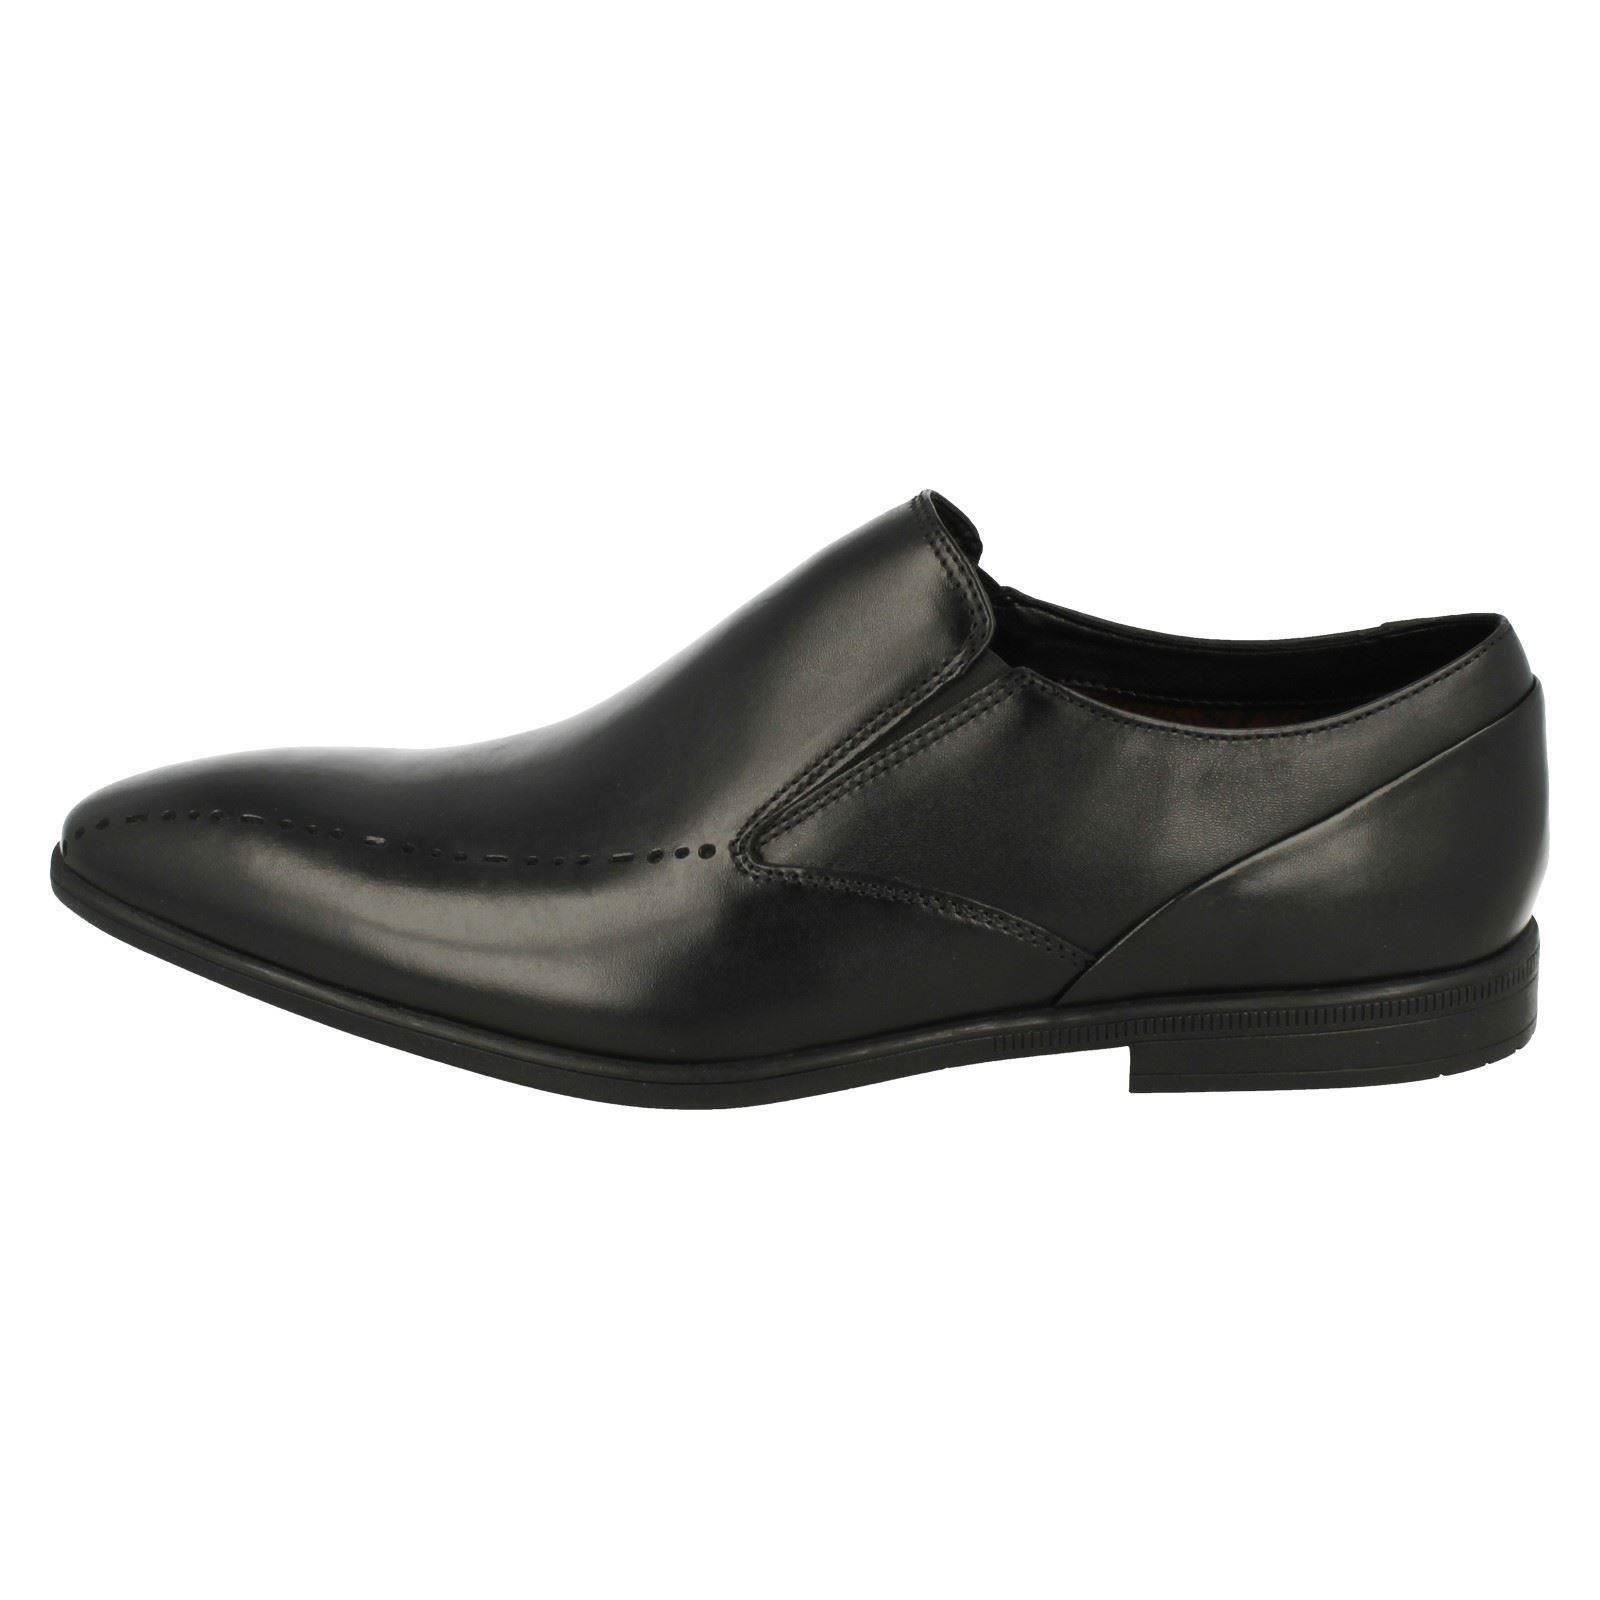 Formal  Herren Clarks Formal  Slip On Schuhes 'Bampton Free' d47dc1